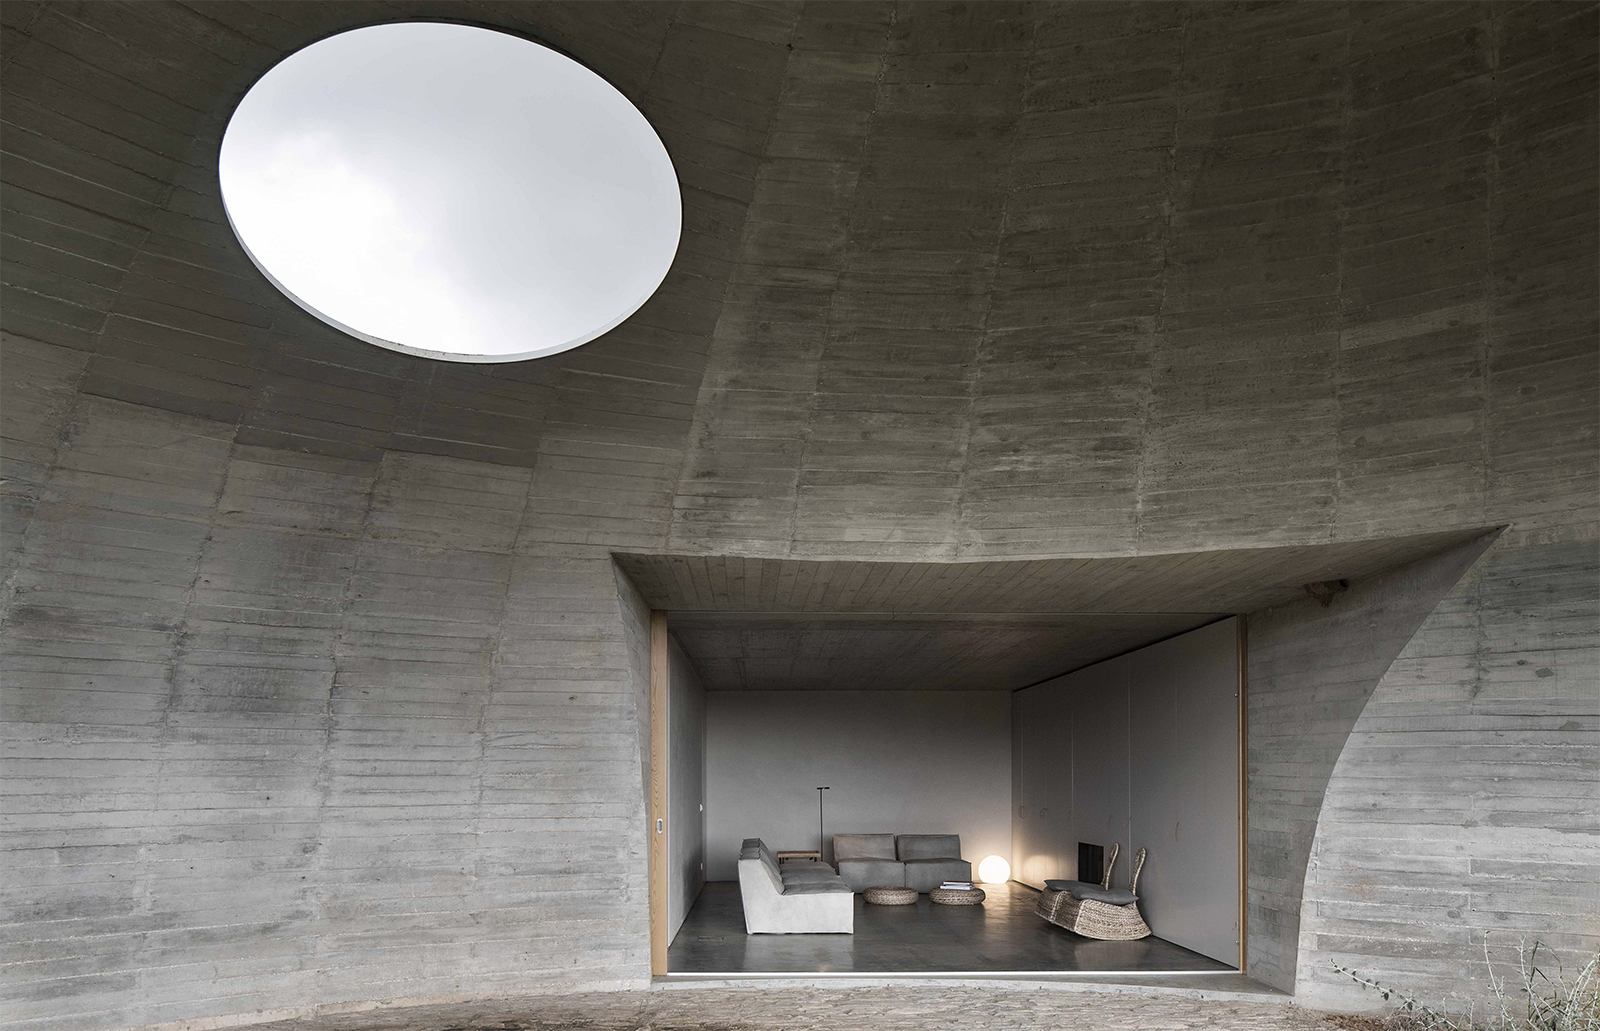 Casa na Terra or 'House in the Earth' is a concrete volume with geometric voids carved out of it to create monastic communal spaces and three ensuite bedrooms.